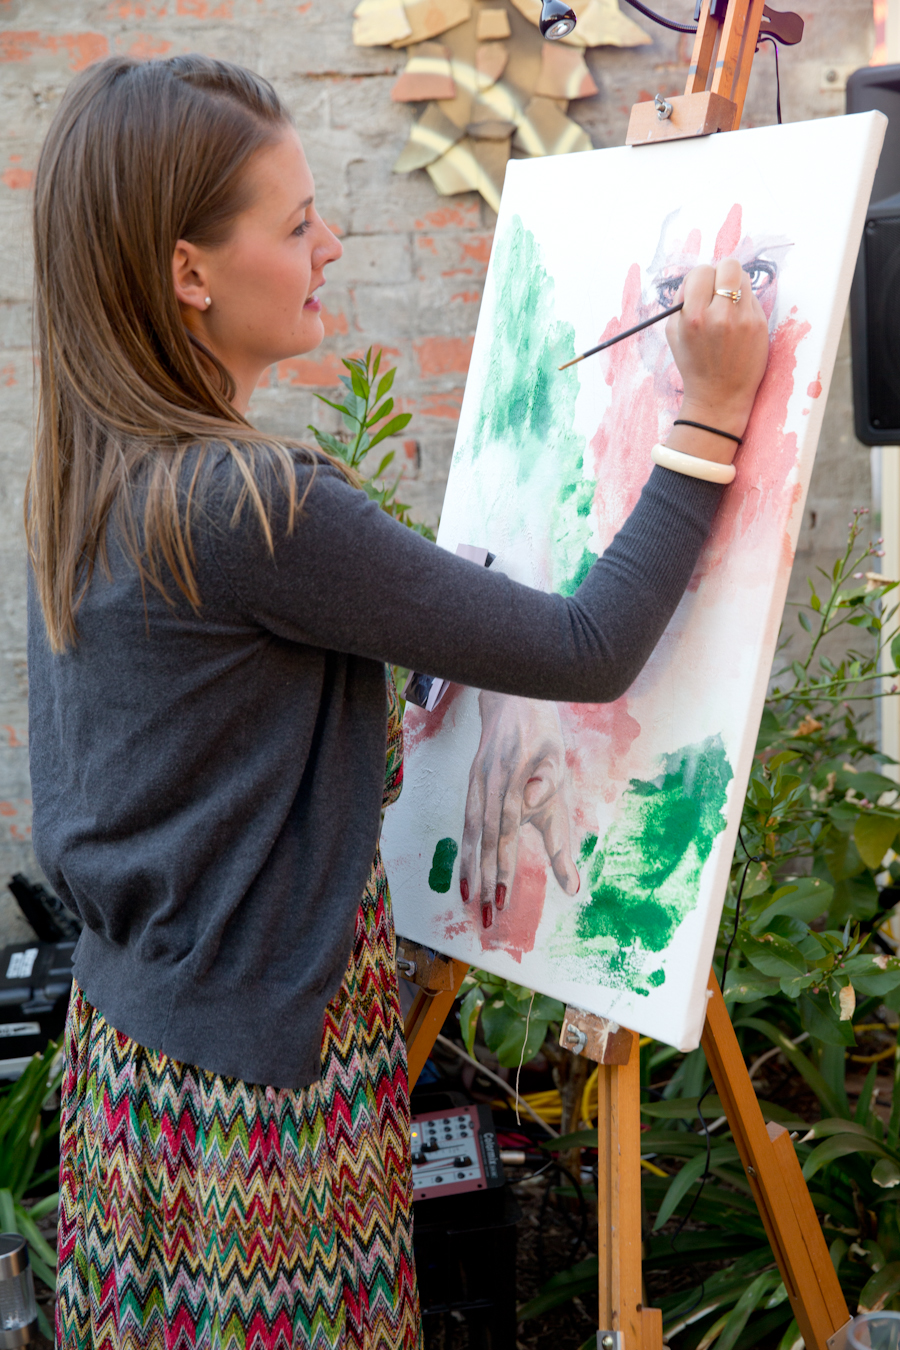 2014 Live Painting 'Life without barriers' event at Manor Estate in conjunction with the Adelaide Fringe exhibition 'Side by side'.